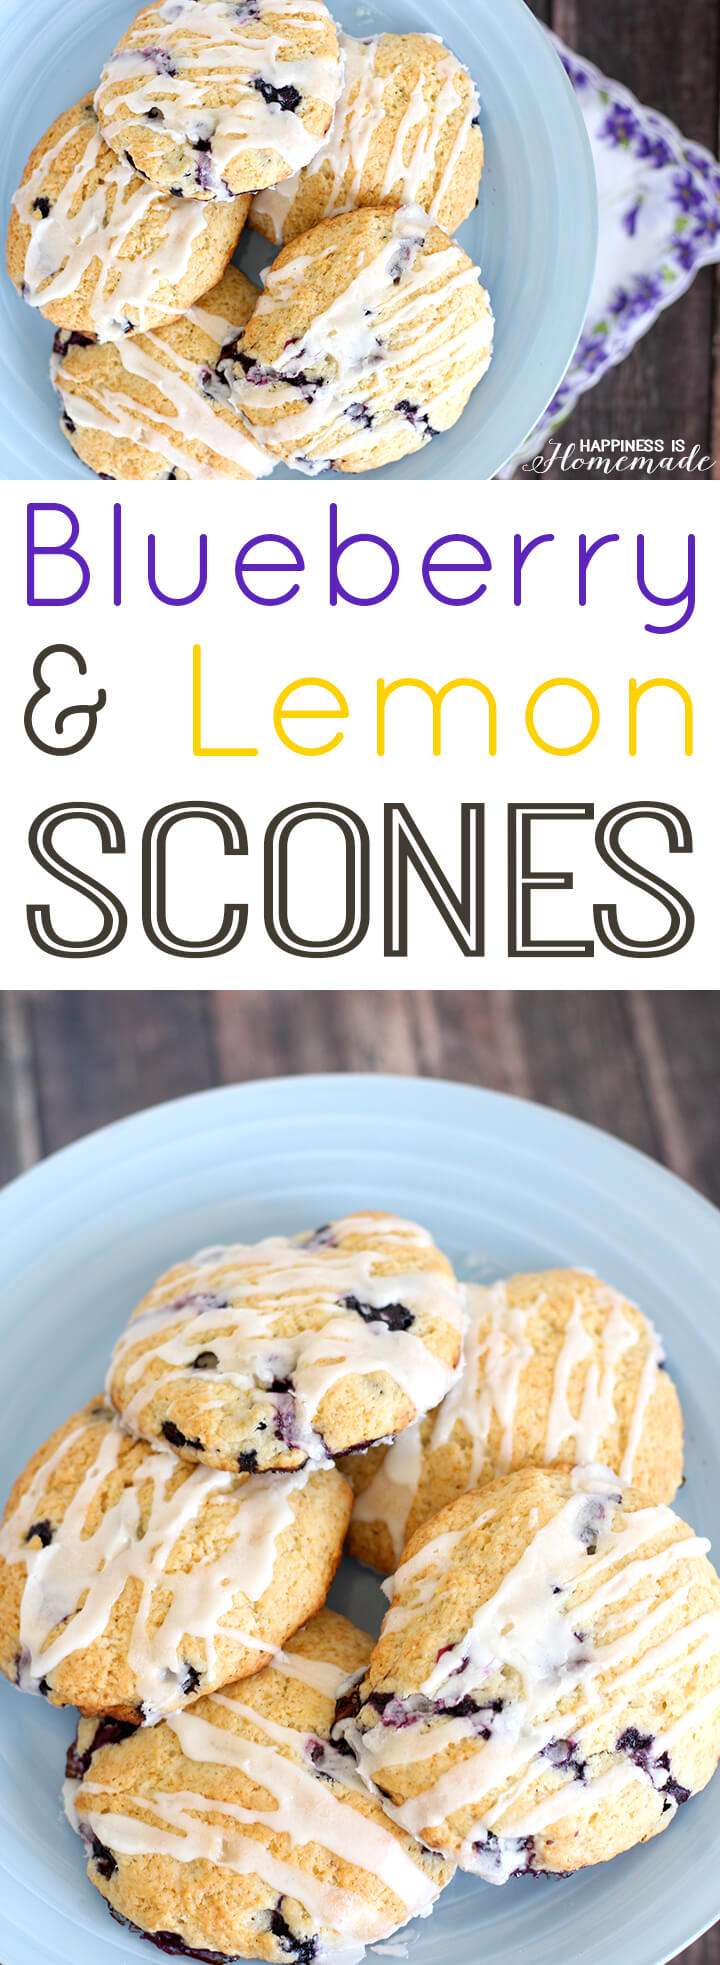 The Best Blueberry Lemon Scone Recipe Ever